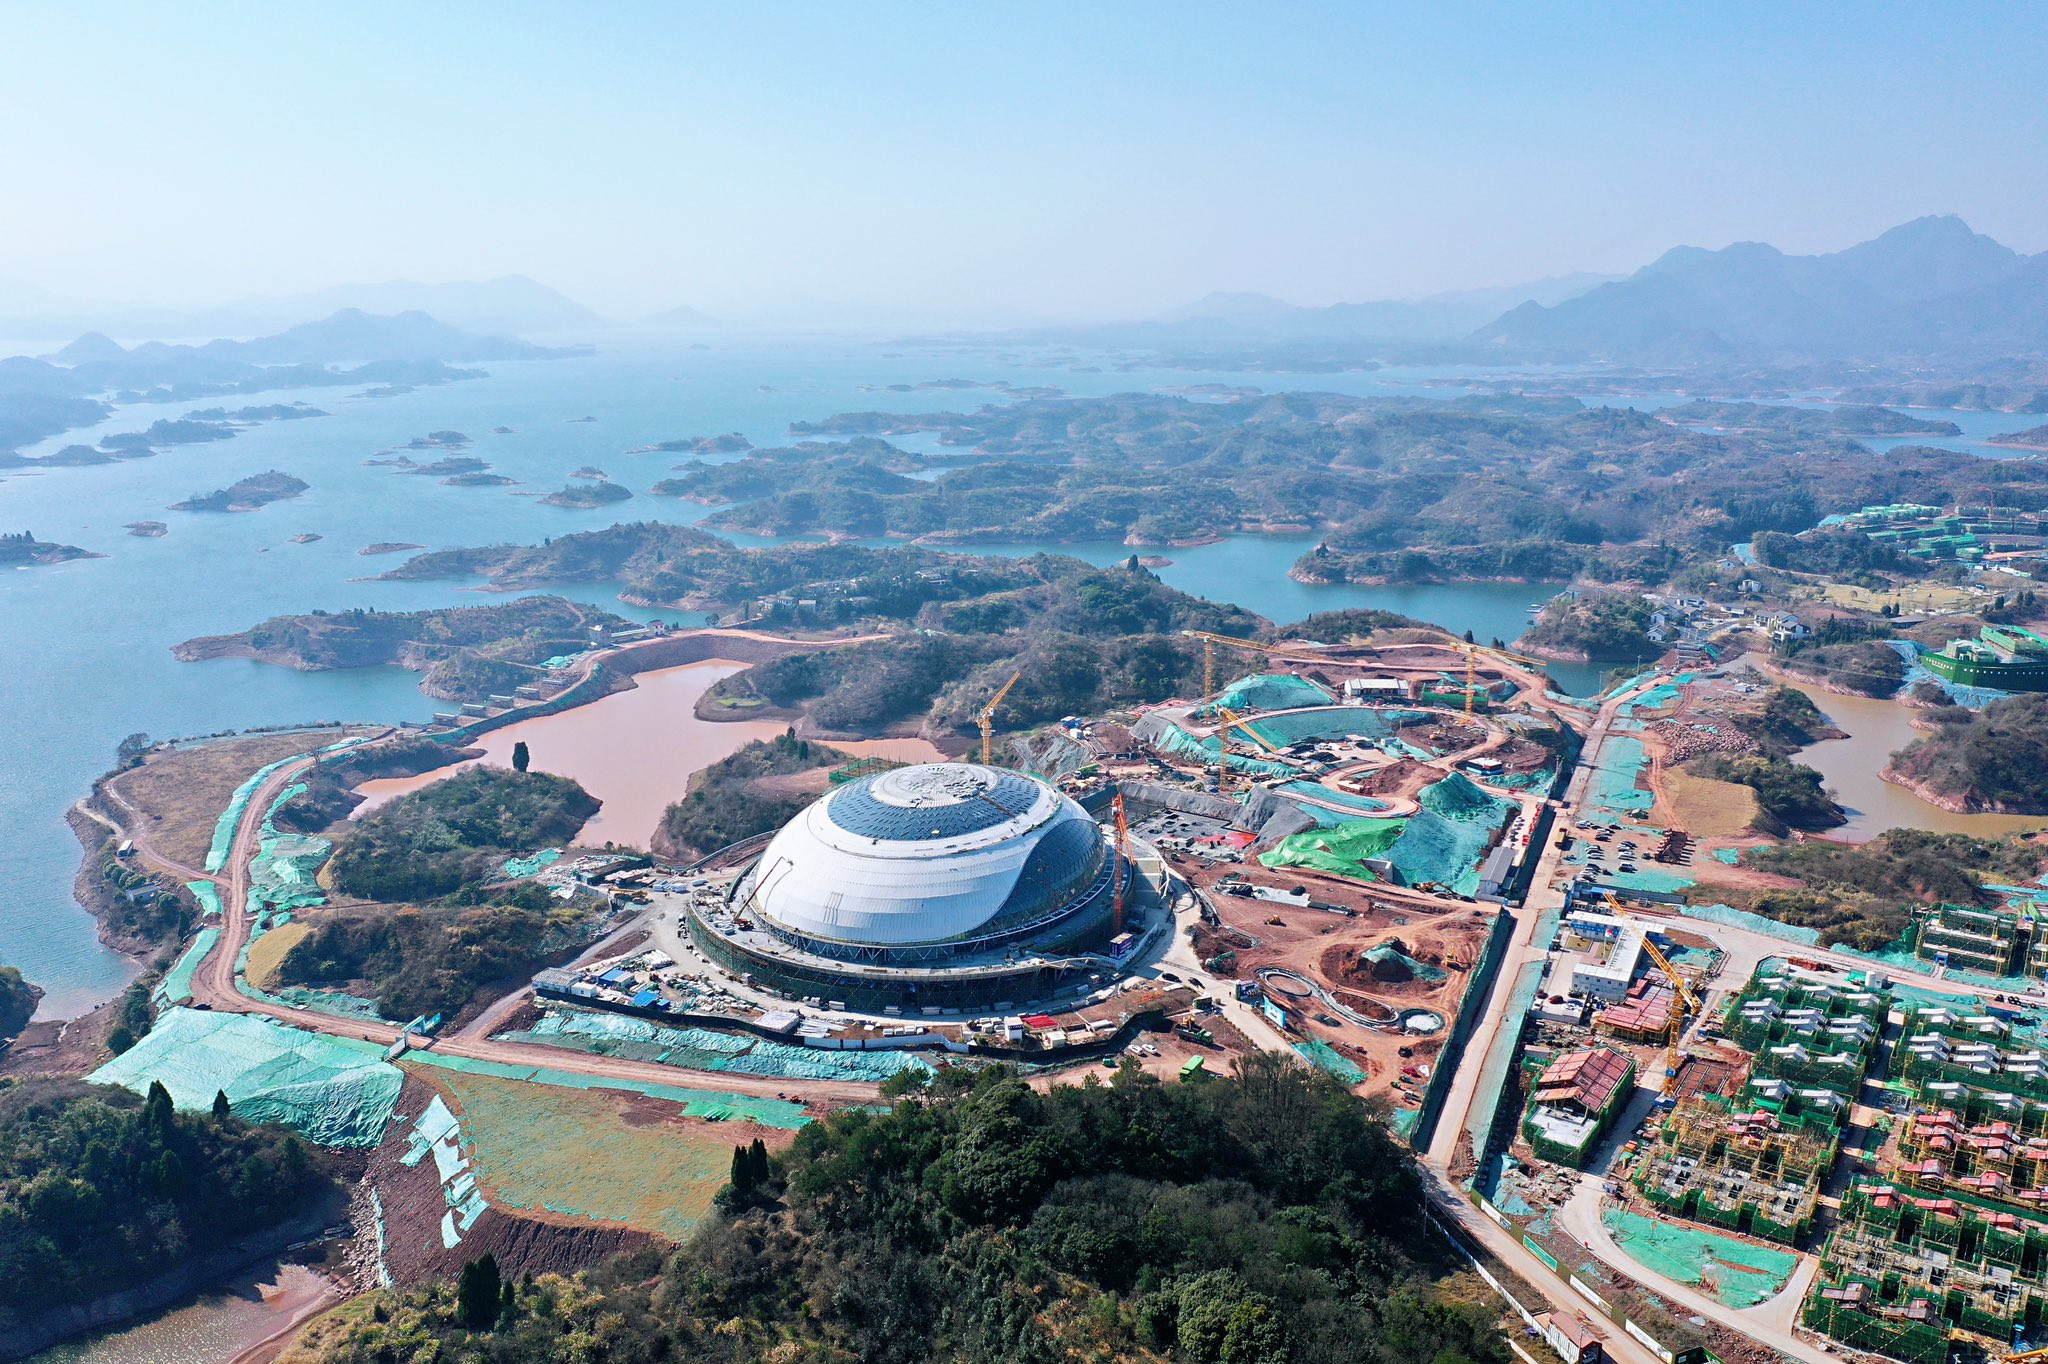 Mountain bike, road race, BMX, open water swimming and triathlon events will take place in the venue cluster around the velodrome ©Hangzhou 2022